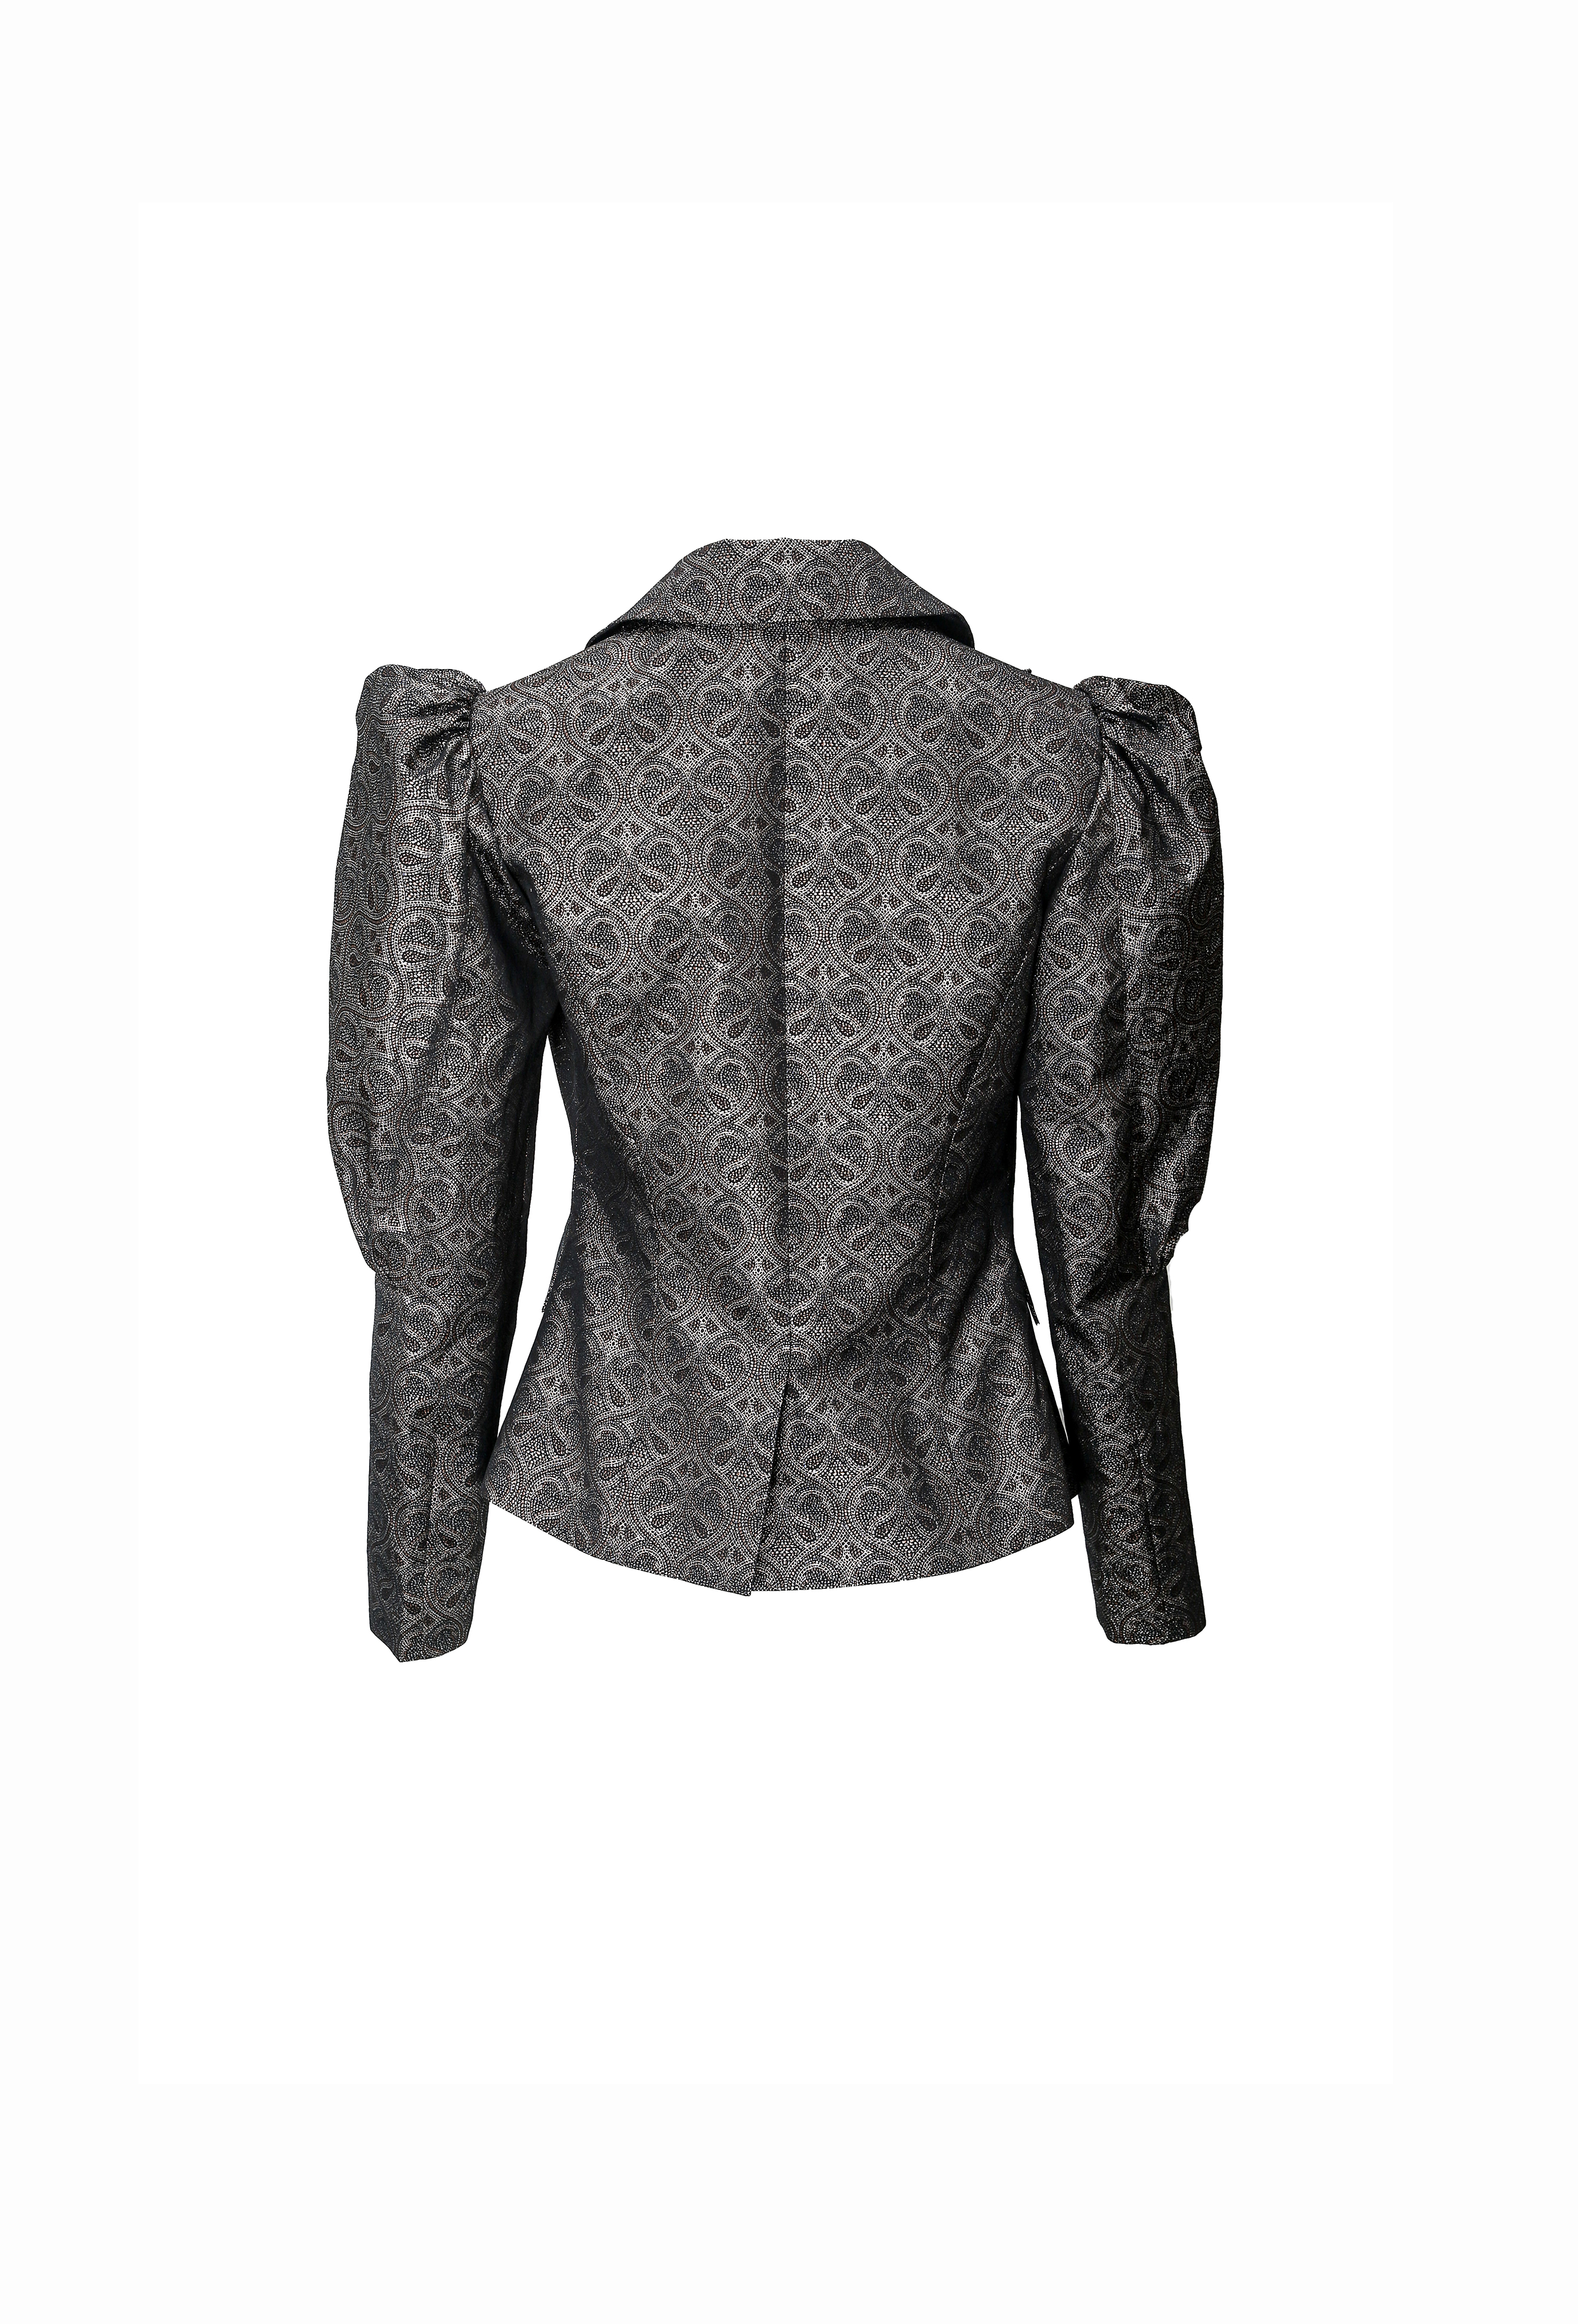 Balloon Sleeve Patterned Jacket